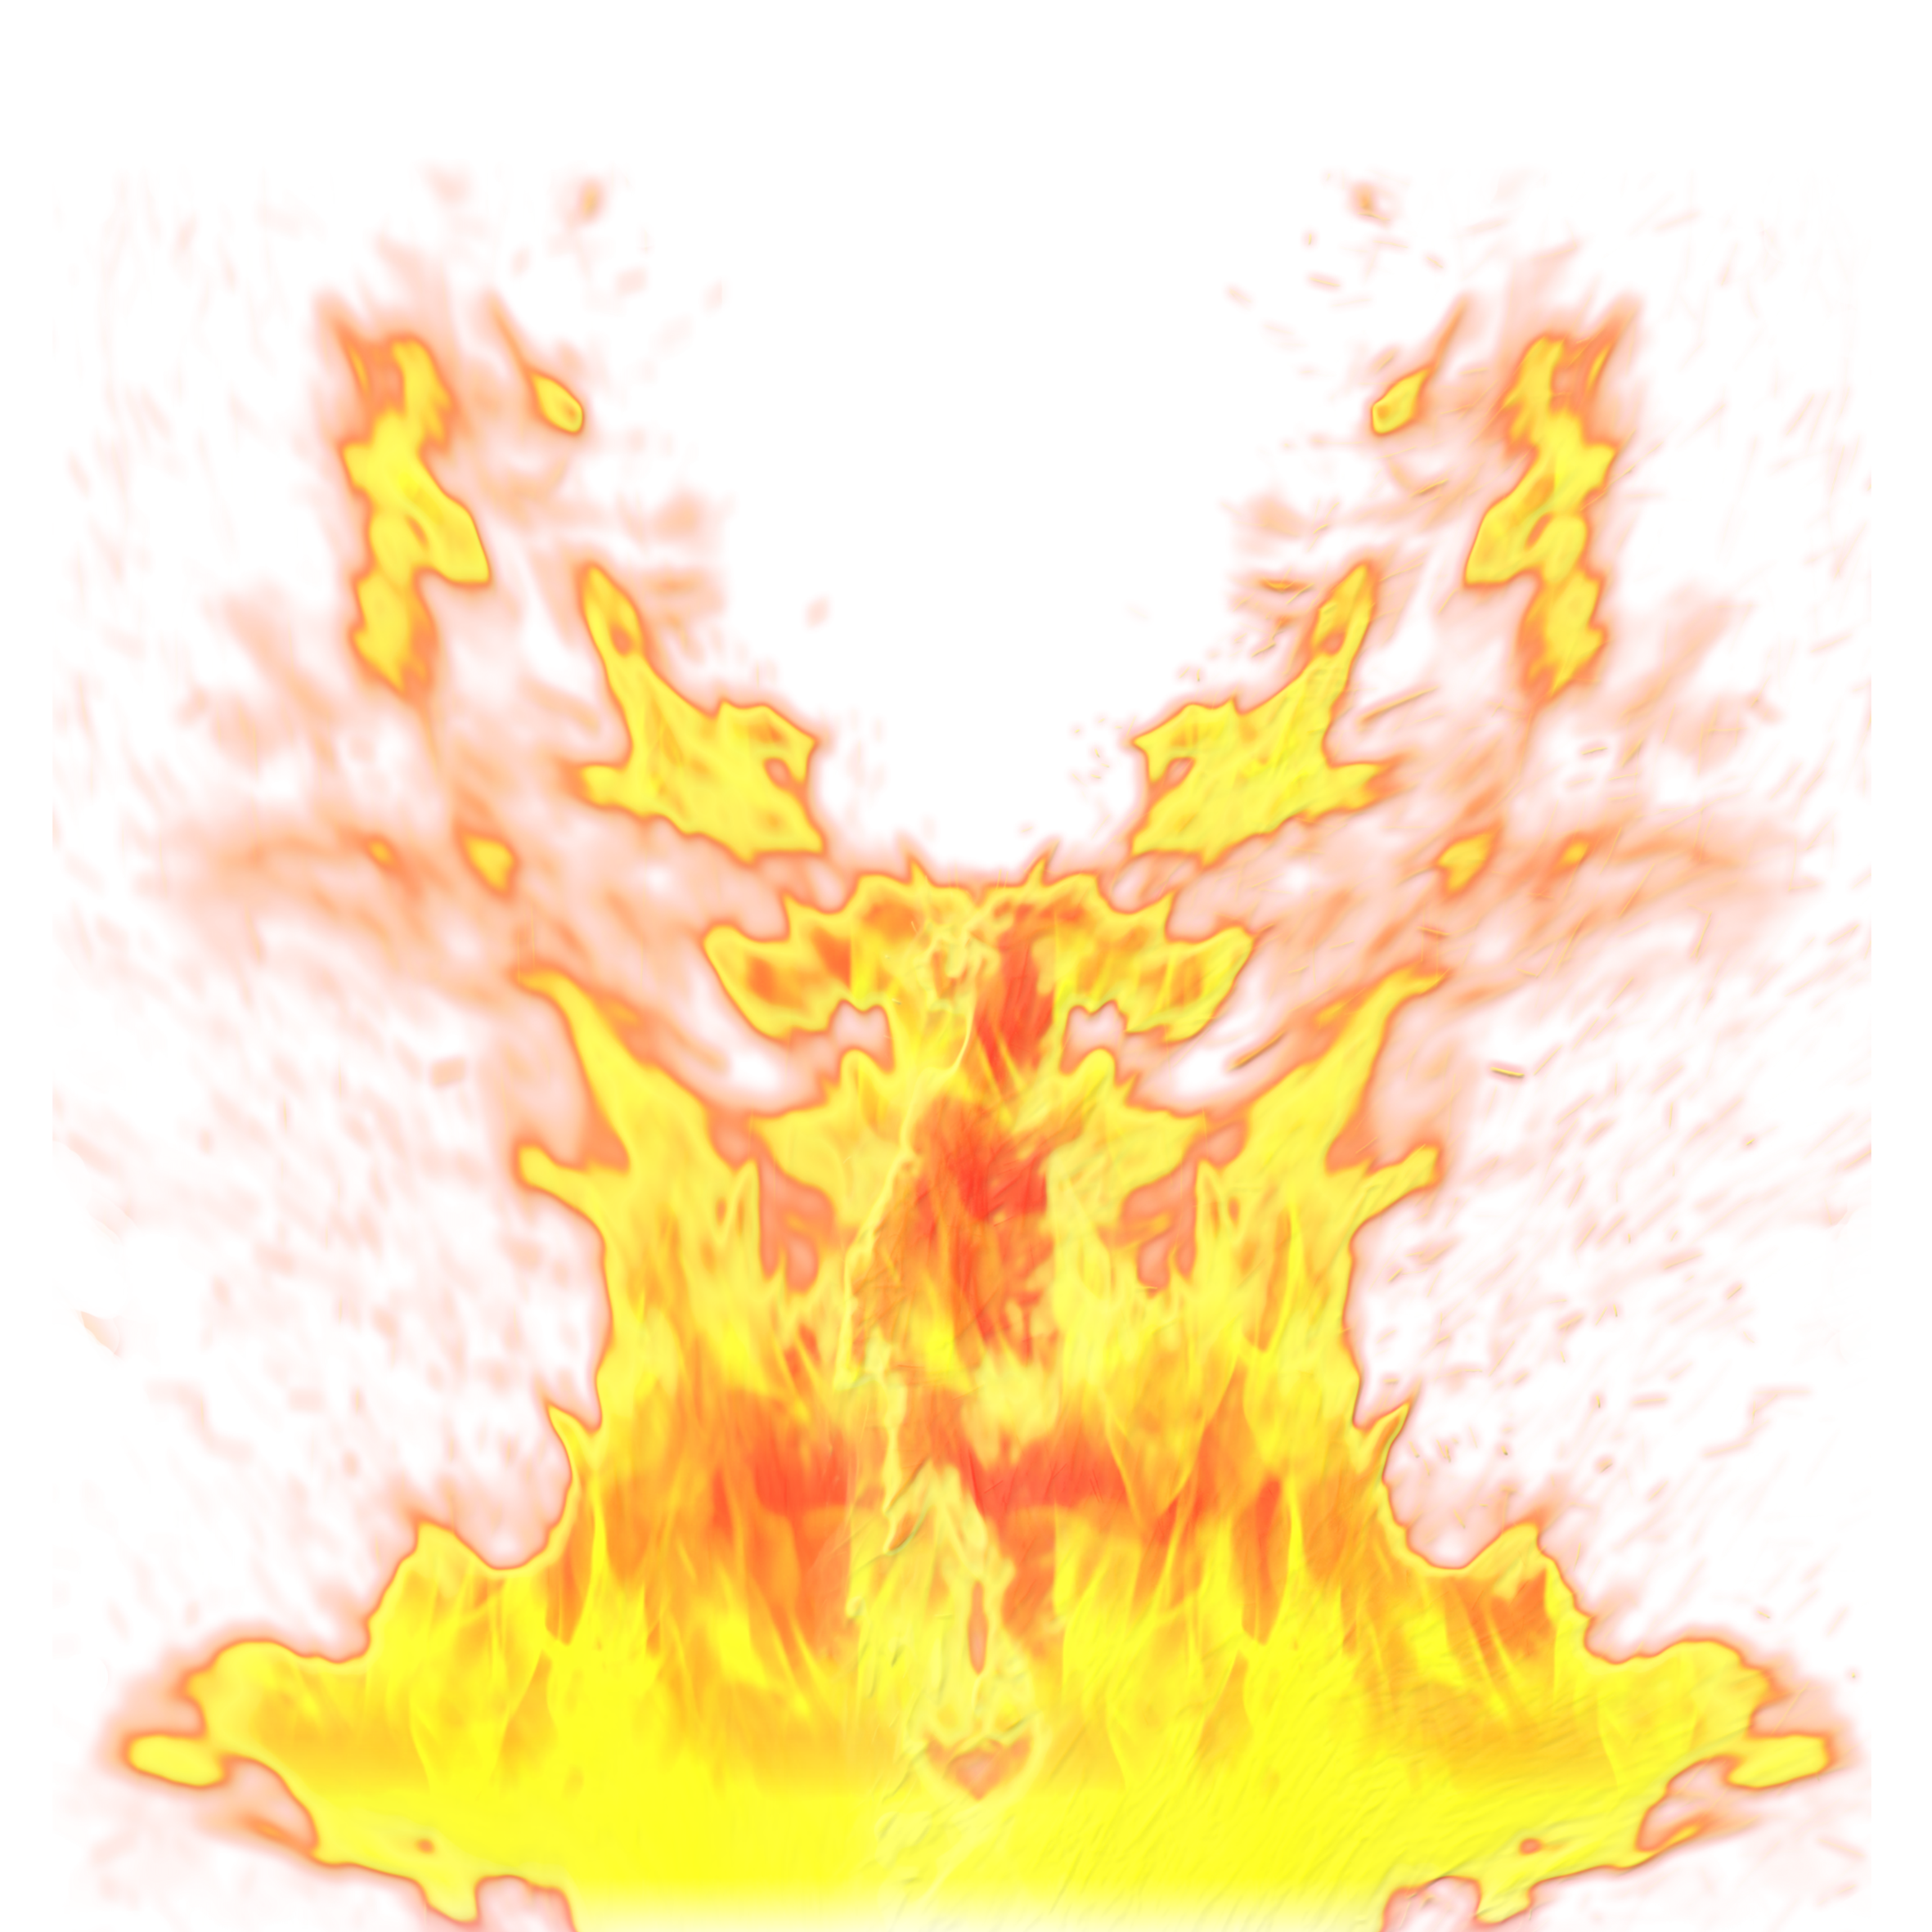 Flames gif png. Fire image purepng free